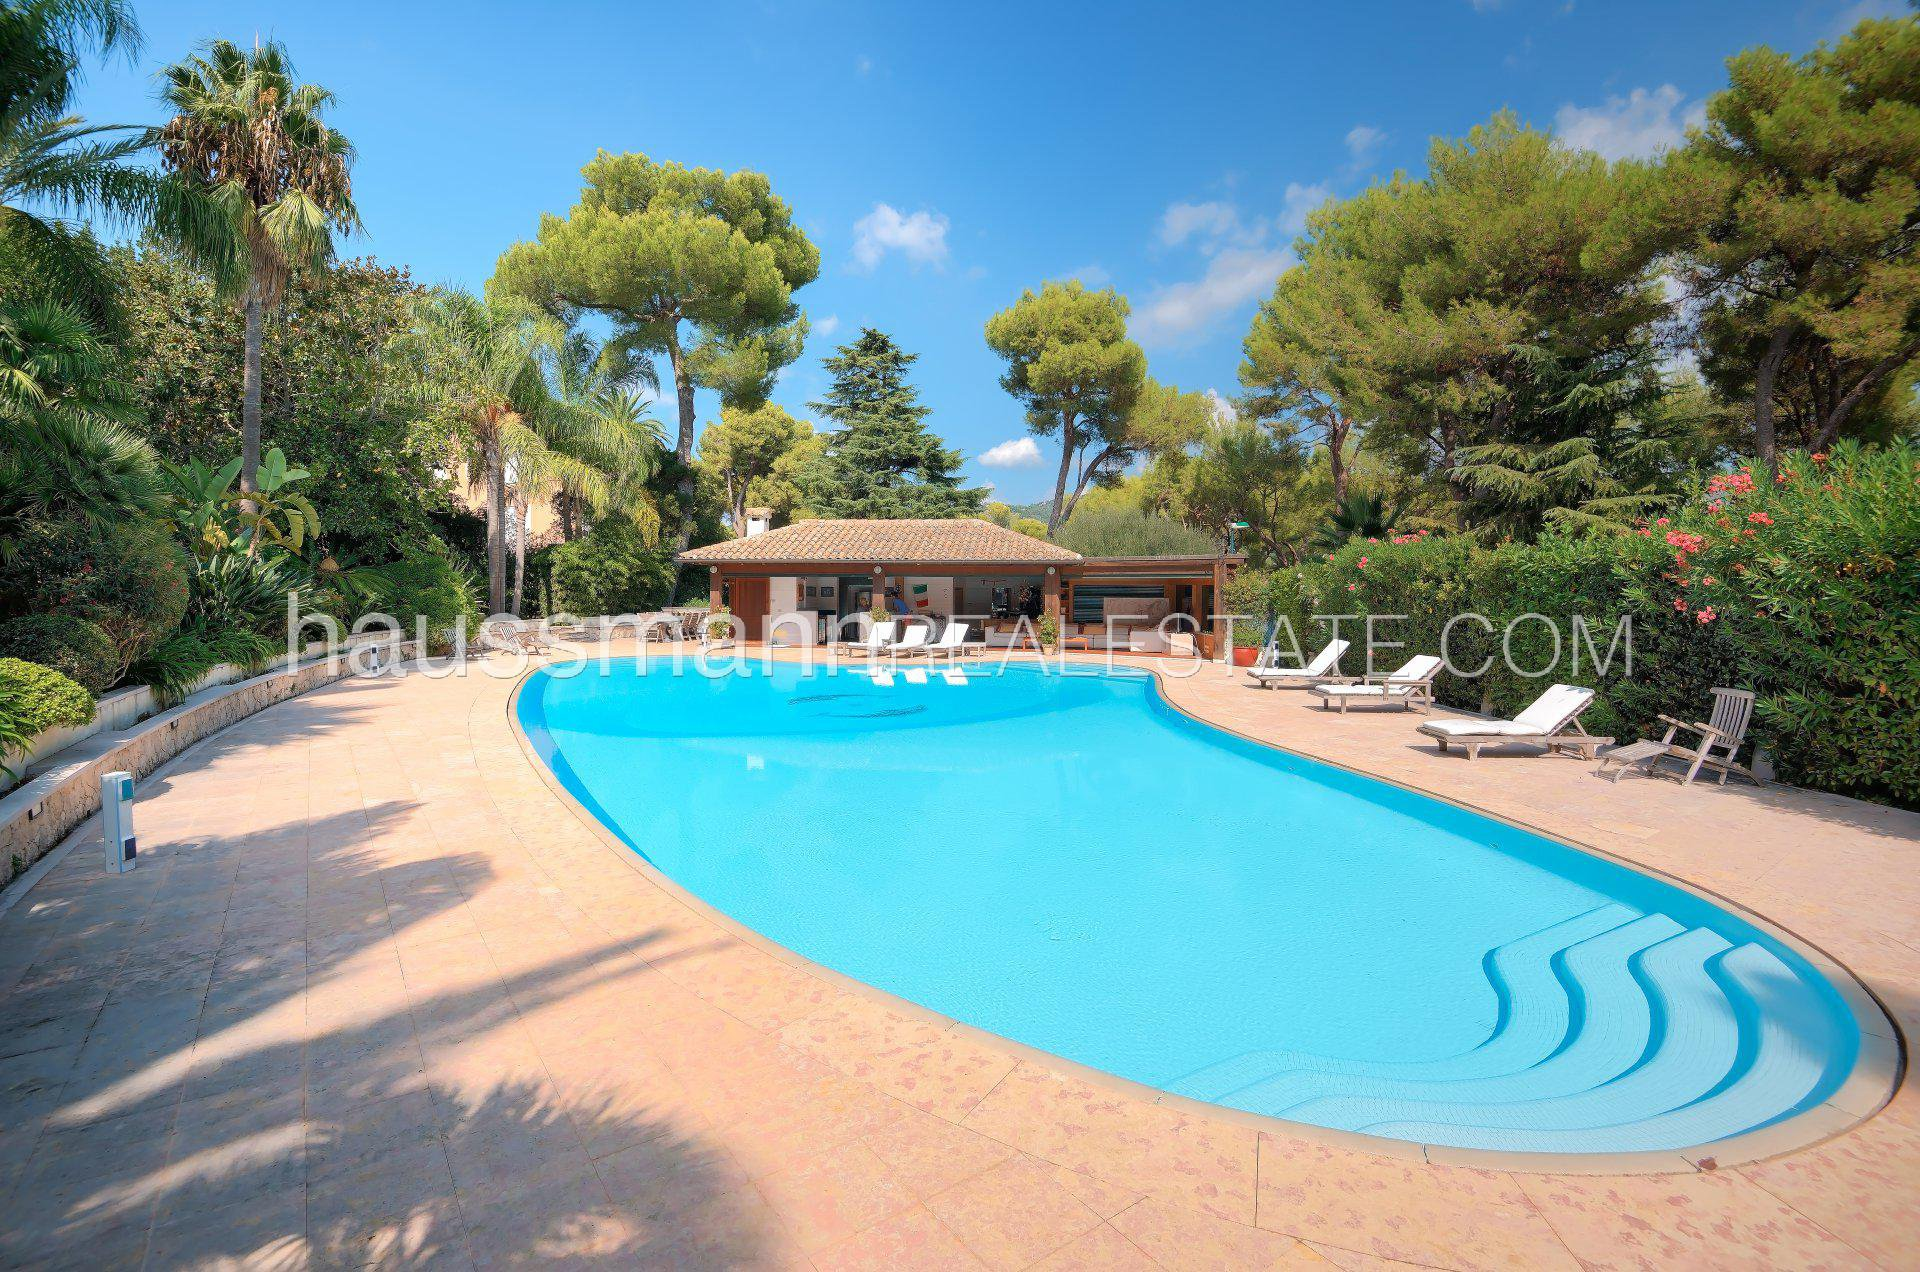 Buying Villa Saint-Jean-Cap-Ferrat Magnificent bourgeois property with swimming pool